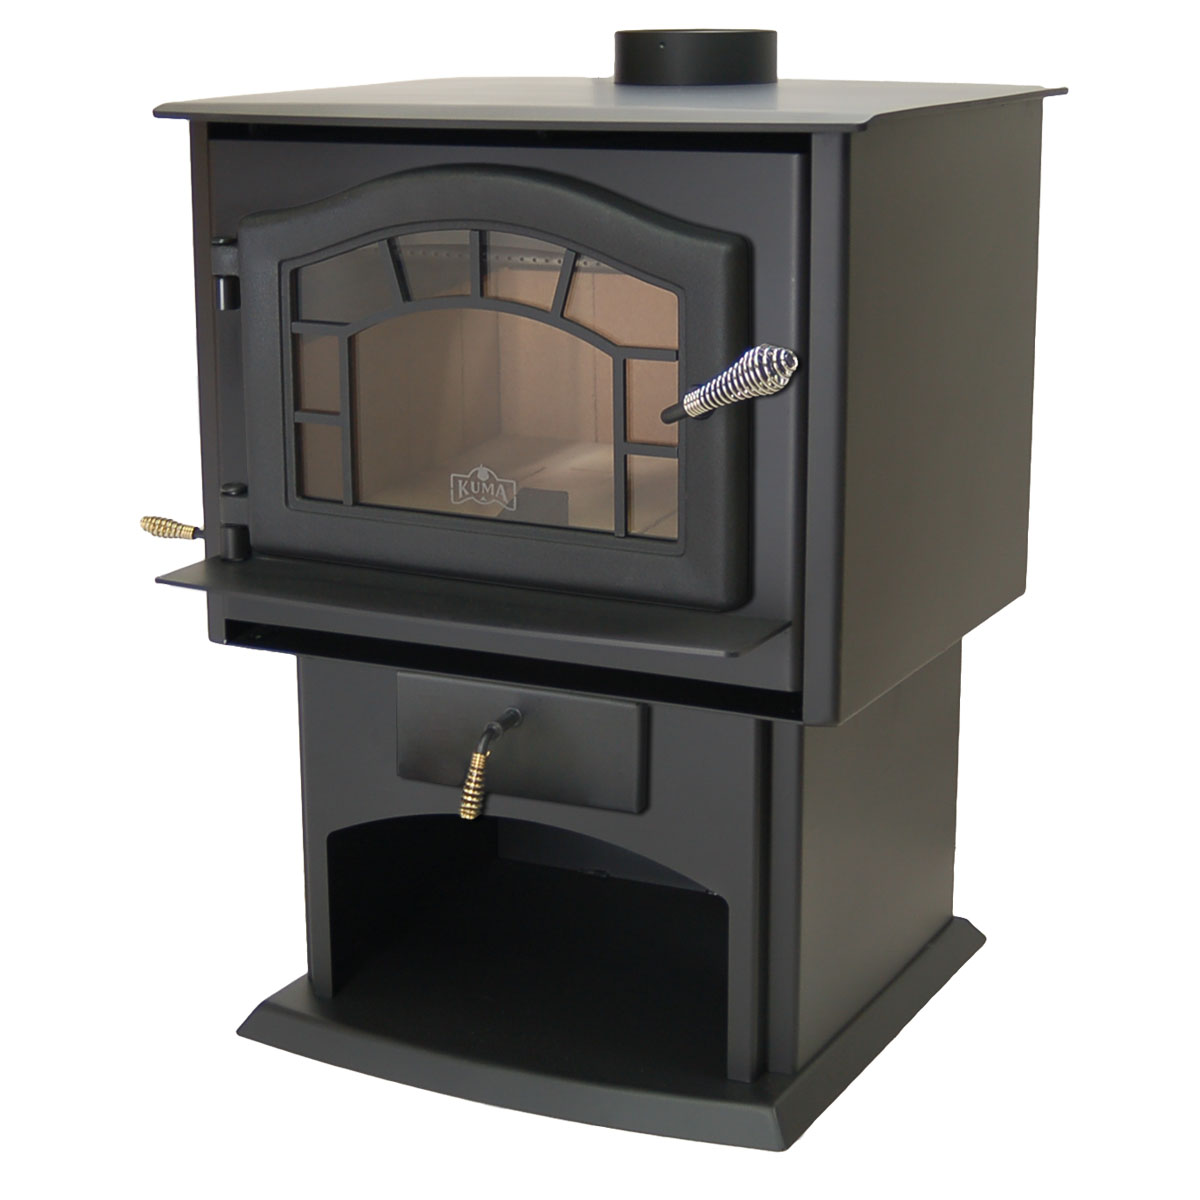 wood stoves kuma wood stoves rh woodstovessutemizu blogspot com Dovre Oil Stoves Old Oil Stoves for Heating